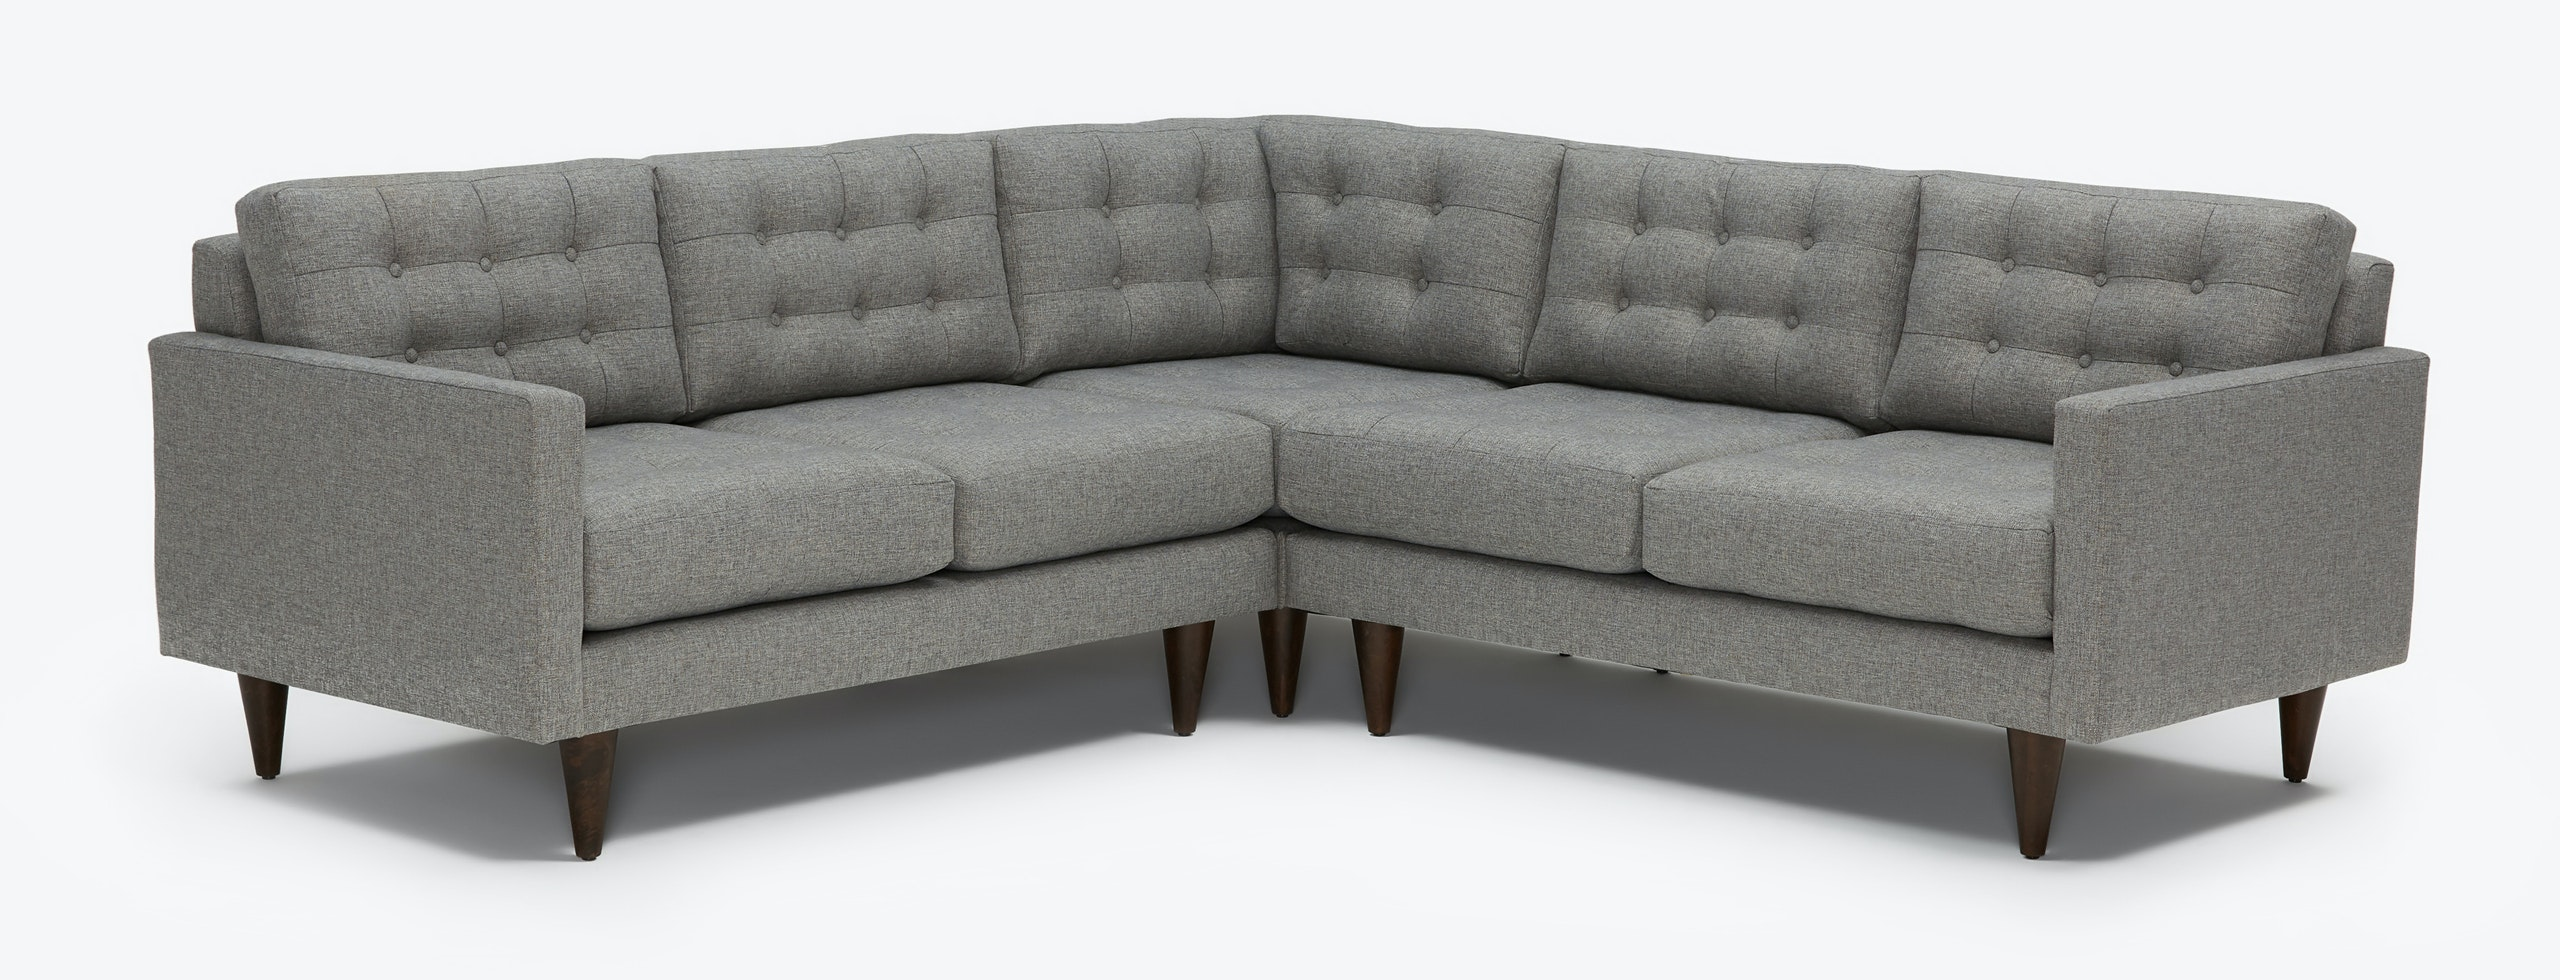 Astounding Eliot Apartment Corner Sectional Gamerscity Chair Design For Home Gamerscityorg